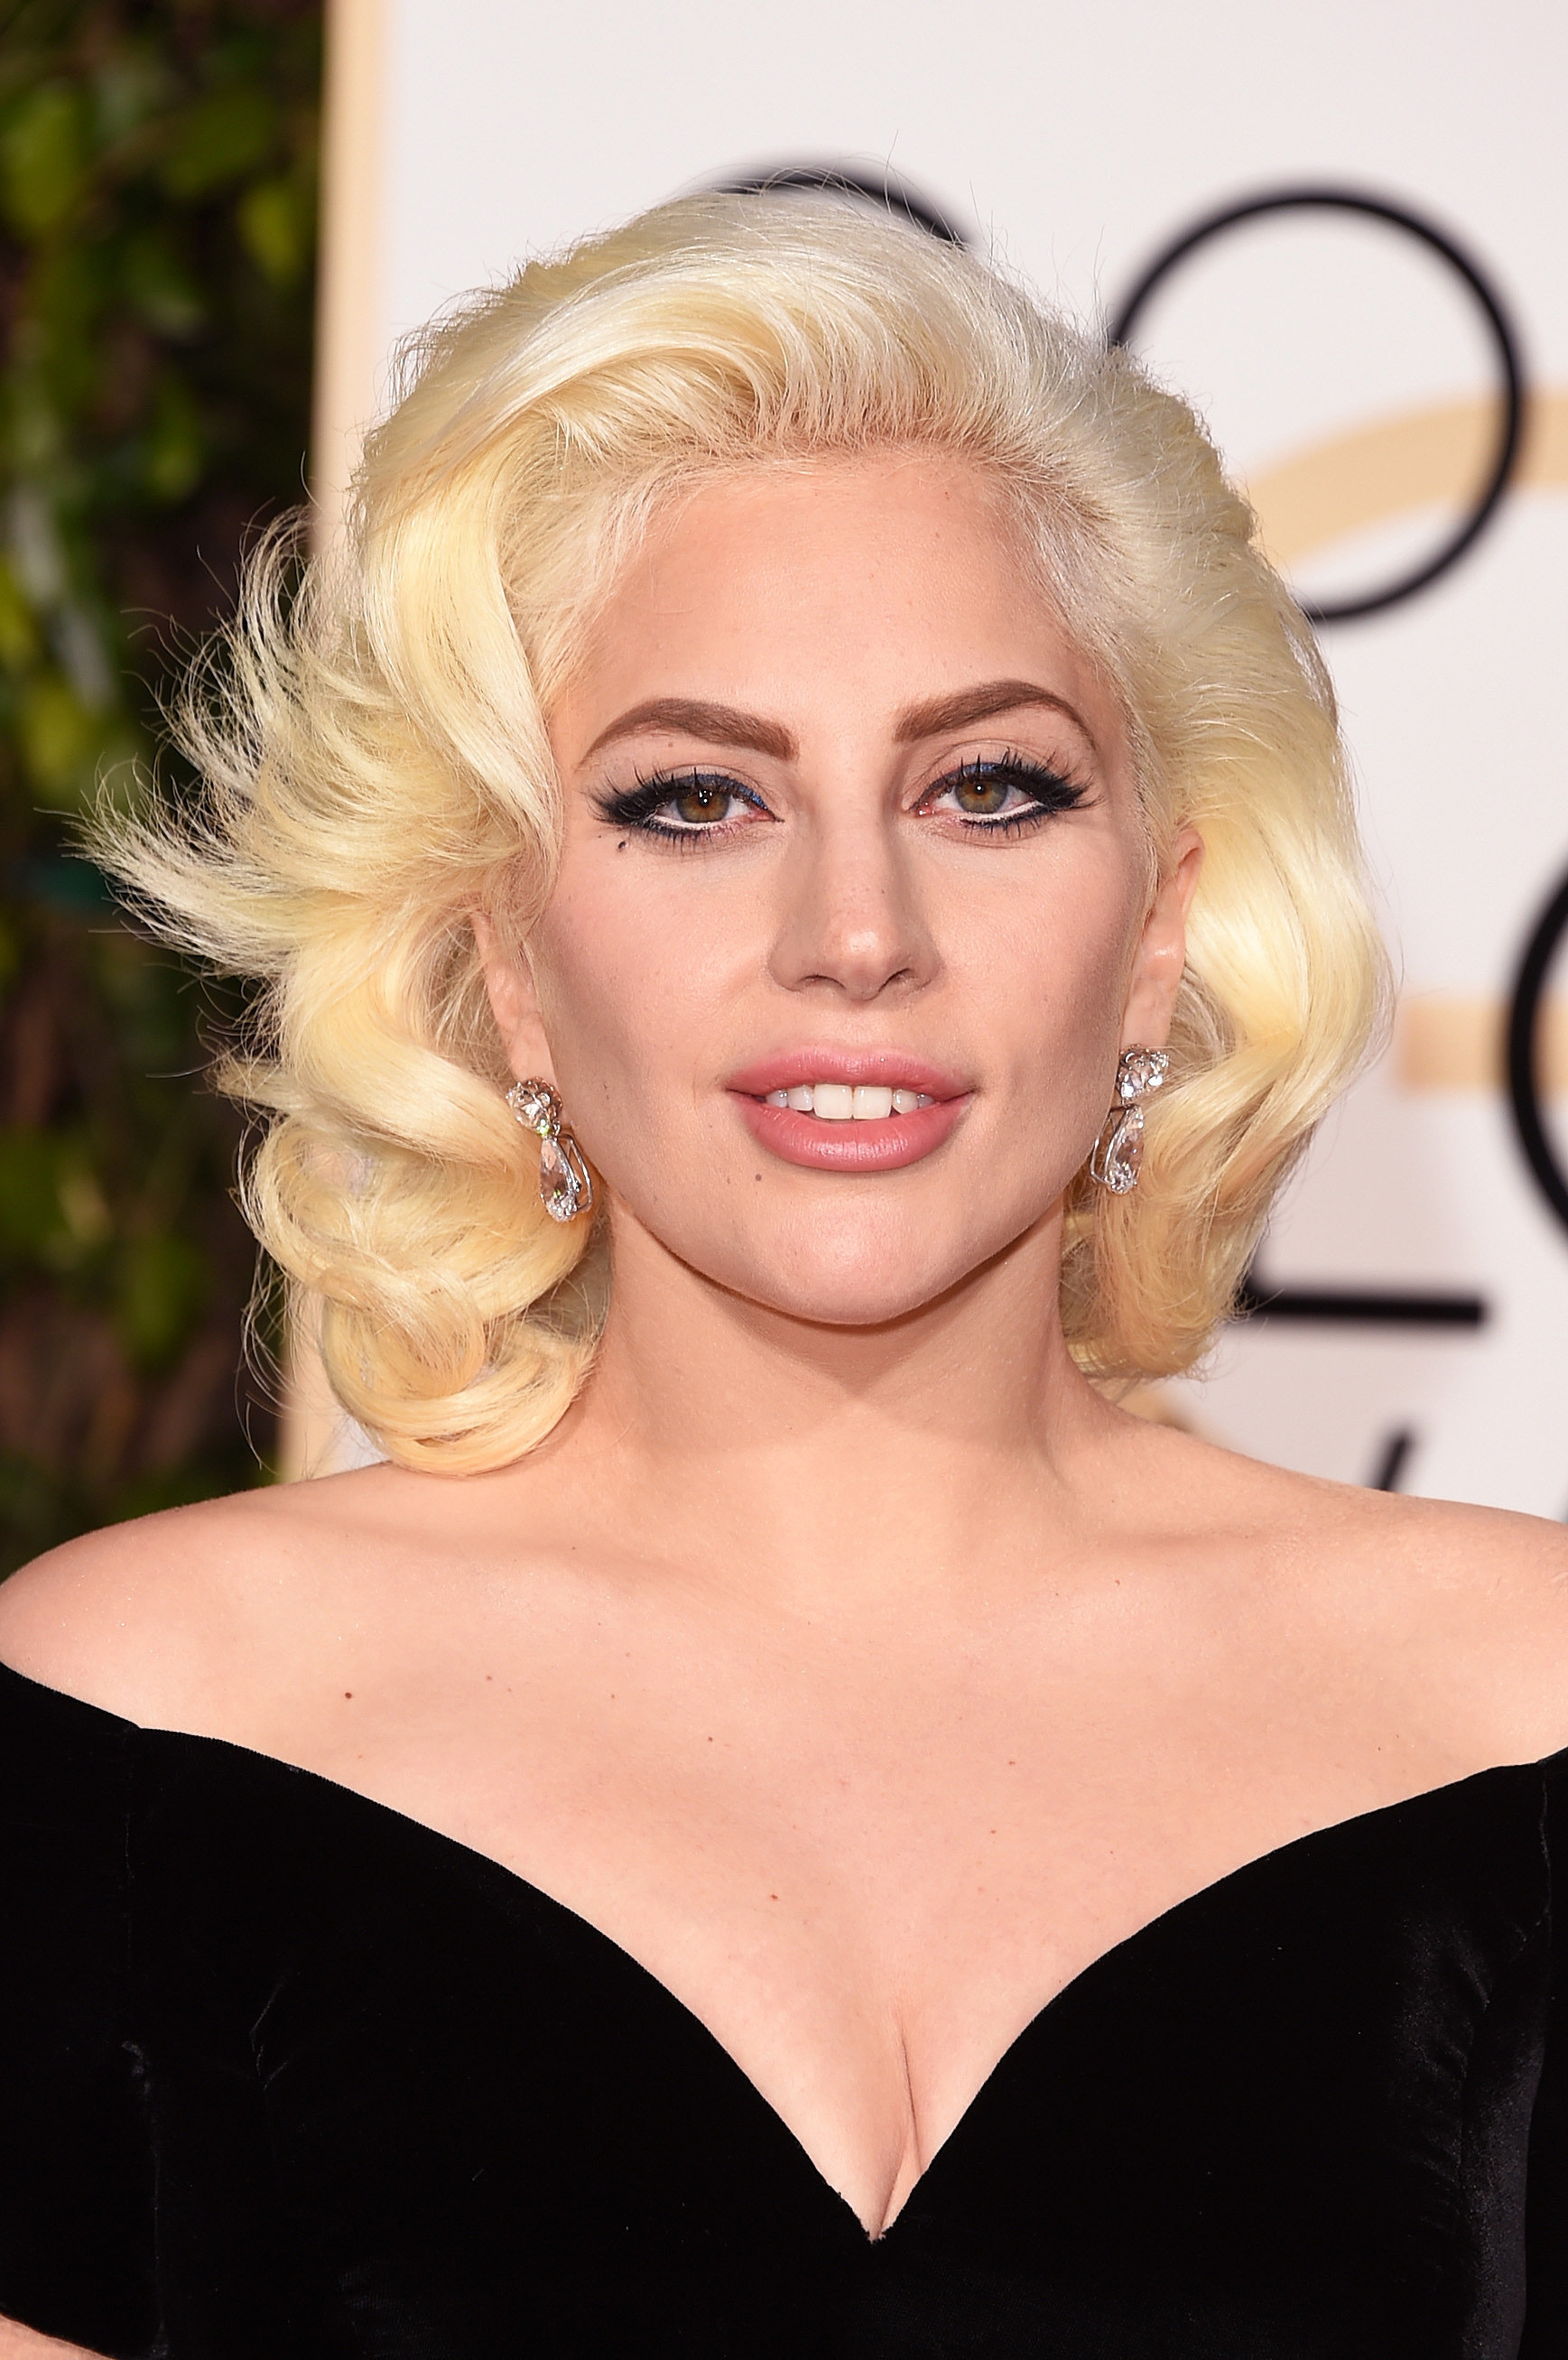 Lady Gaga's Golden Globes Makeup 2016 | POPSUGAR Beauty Lady Gaga